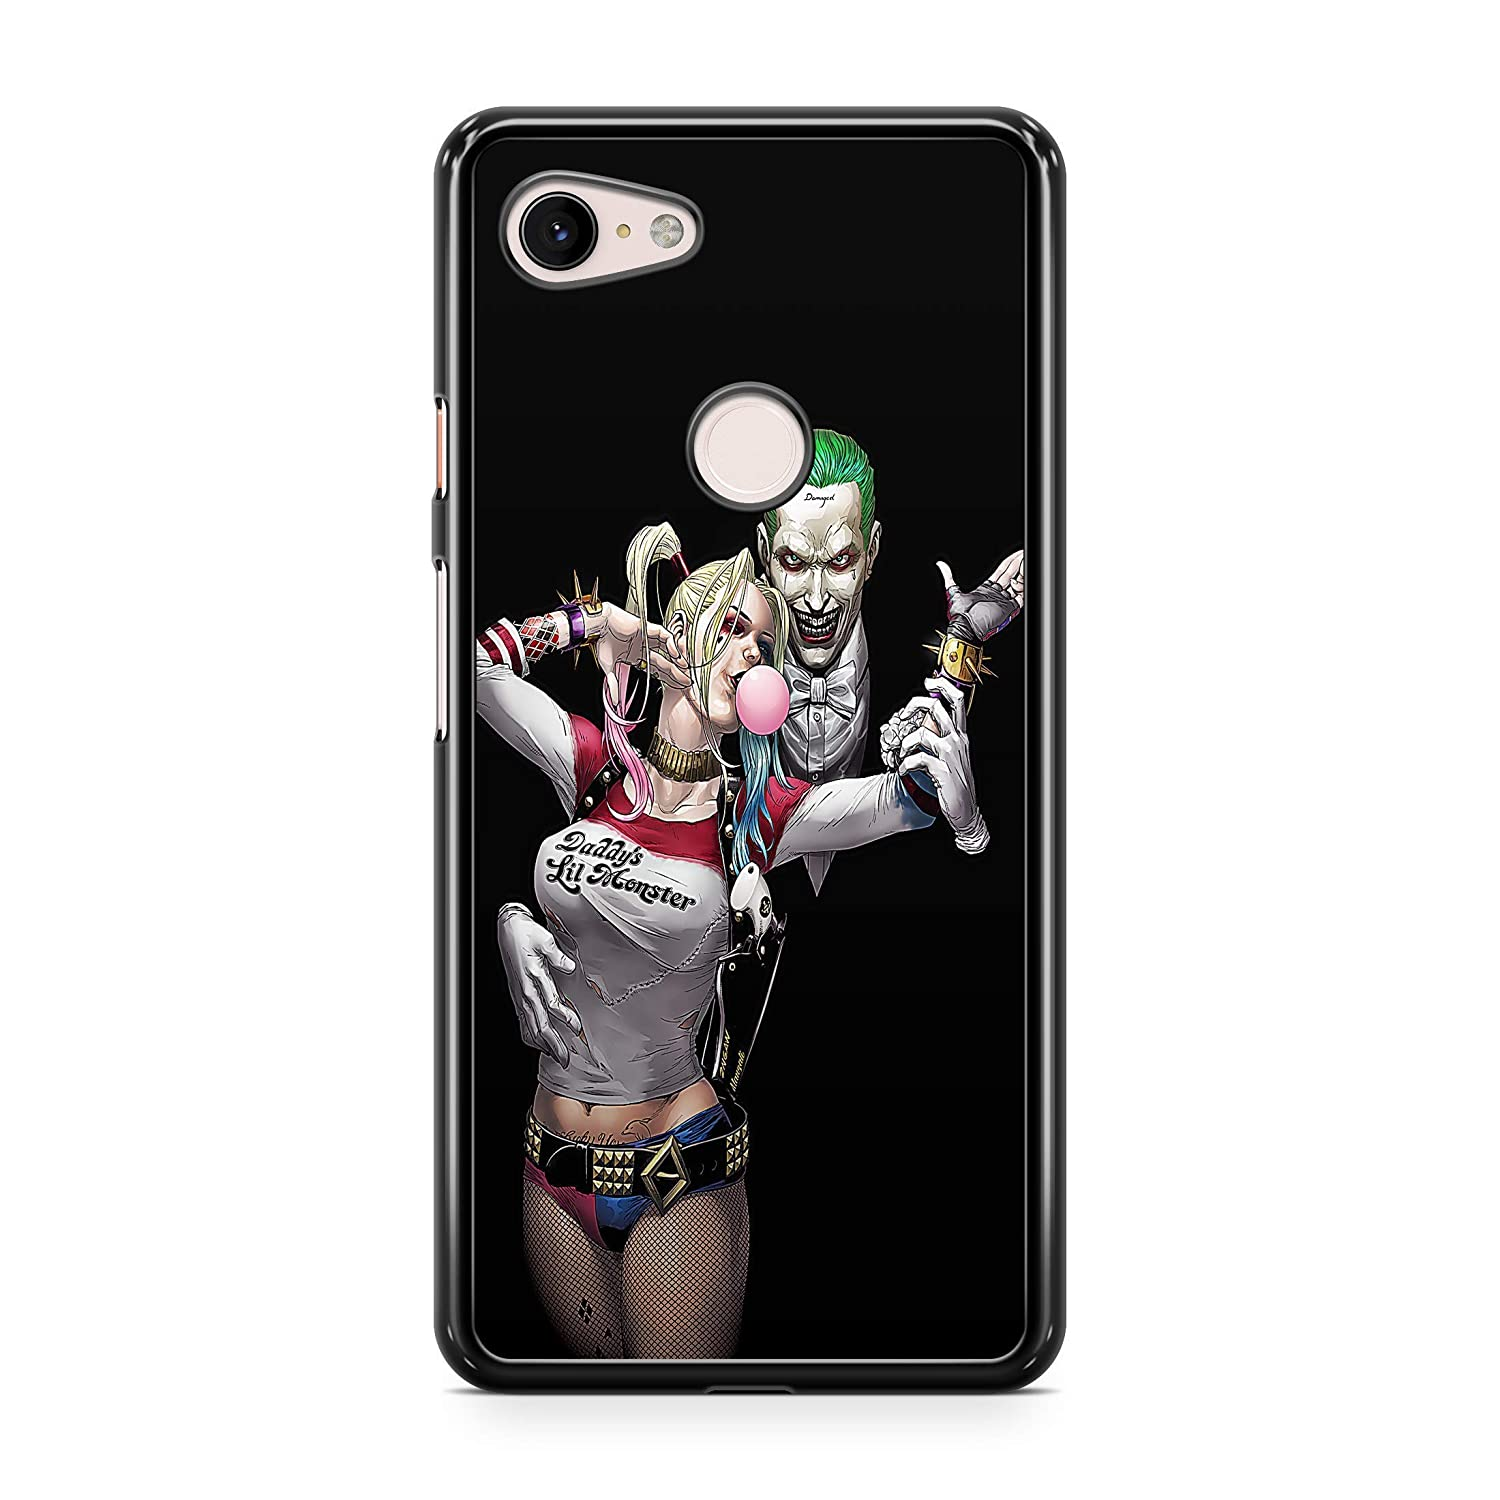 Inspired by Joker Harley Quinn Case for iPhone Xs Max XR Xs 8 Plus Case Comics Superhero Phone Cover M70